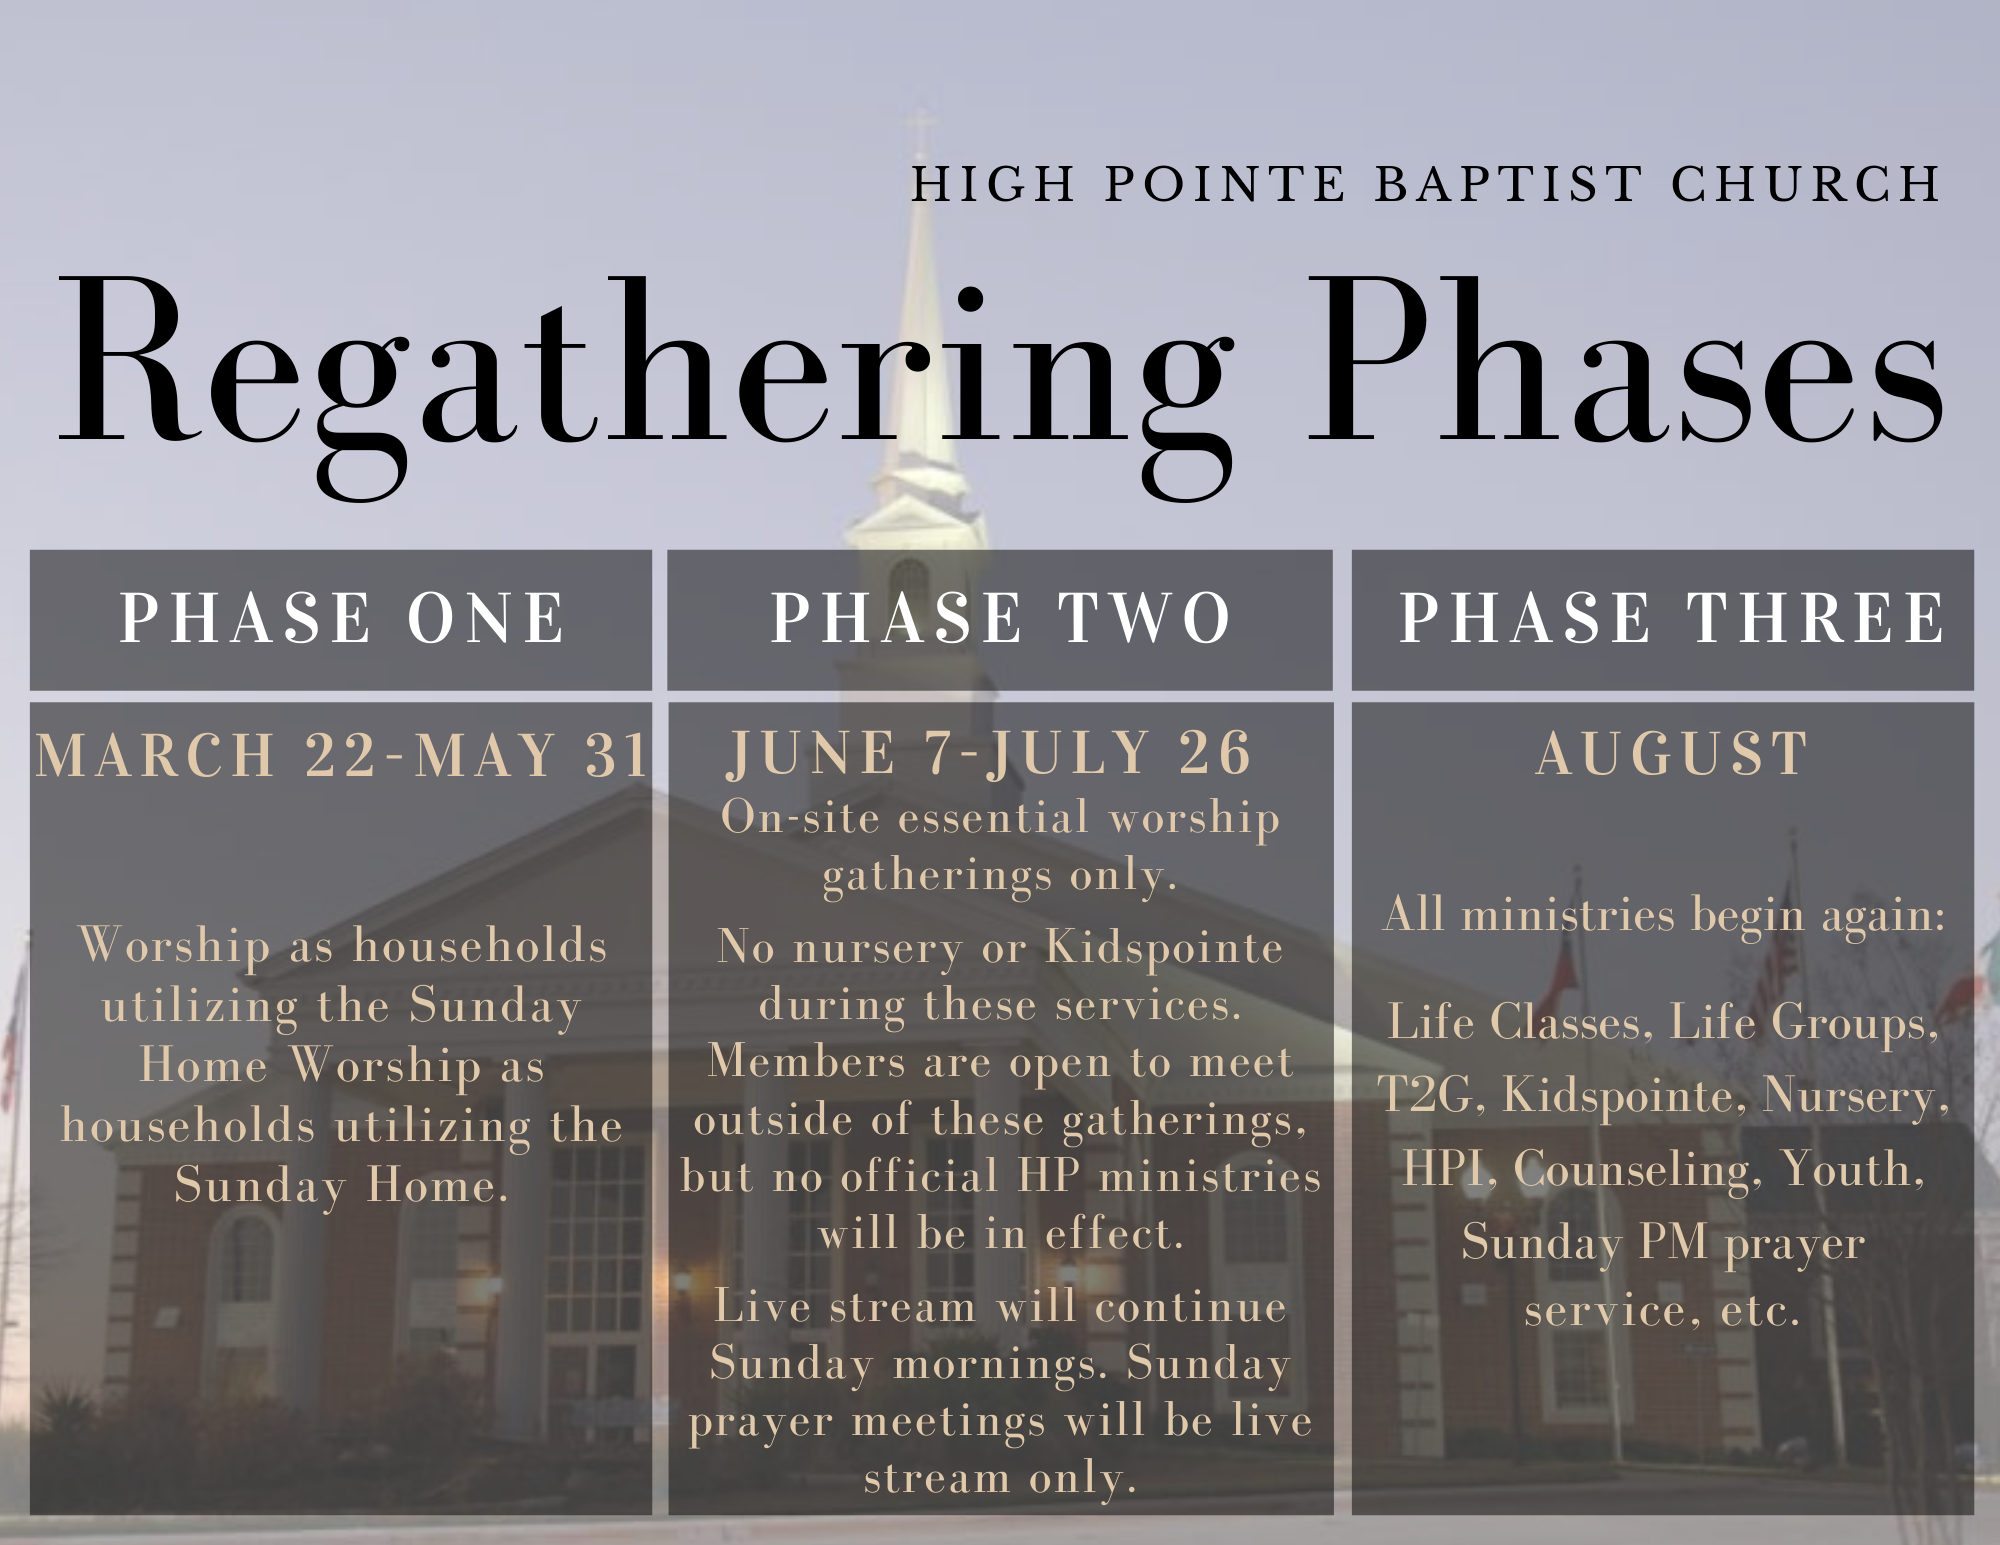 regathering.phases